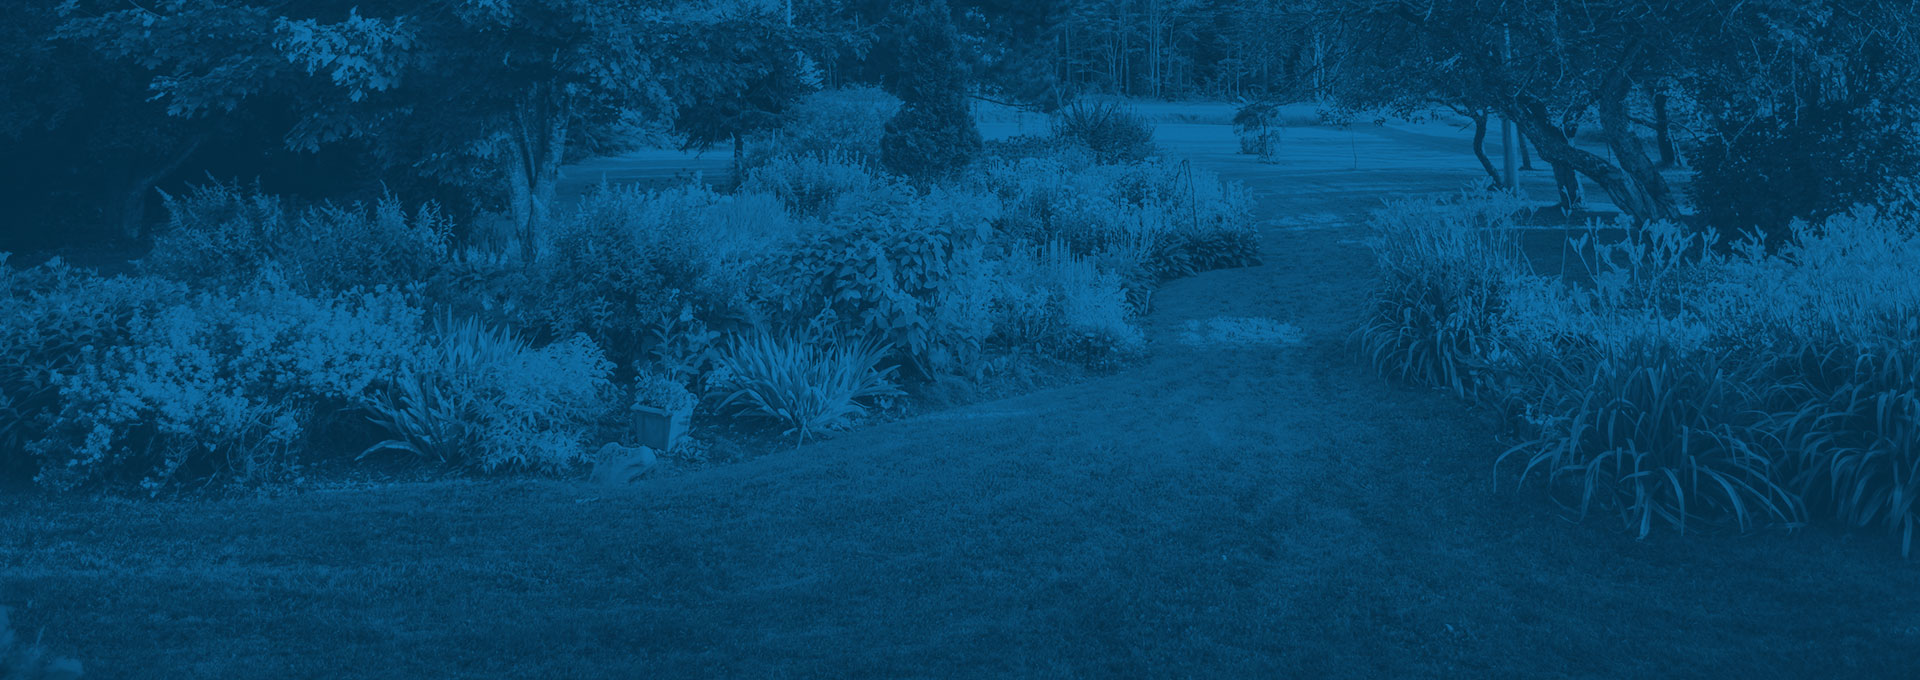 Eco-Friendly Guide for Lawncare and Landscaping Businesses: Getting Started